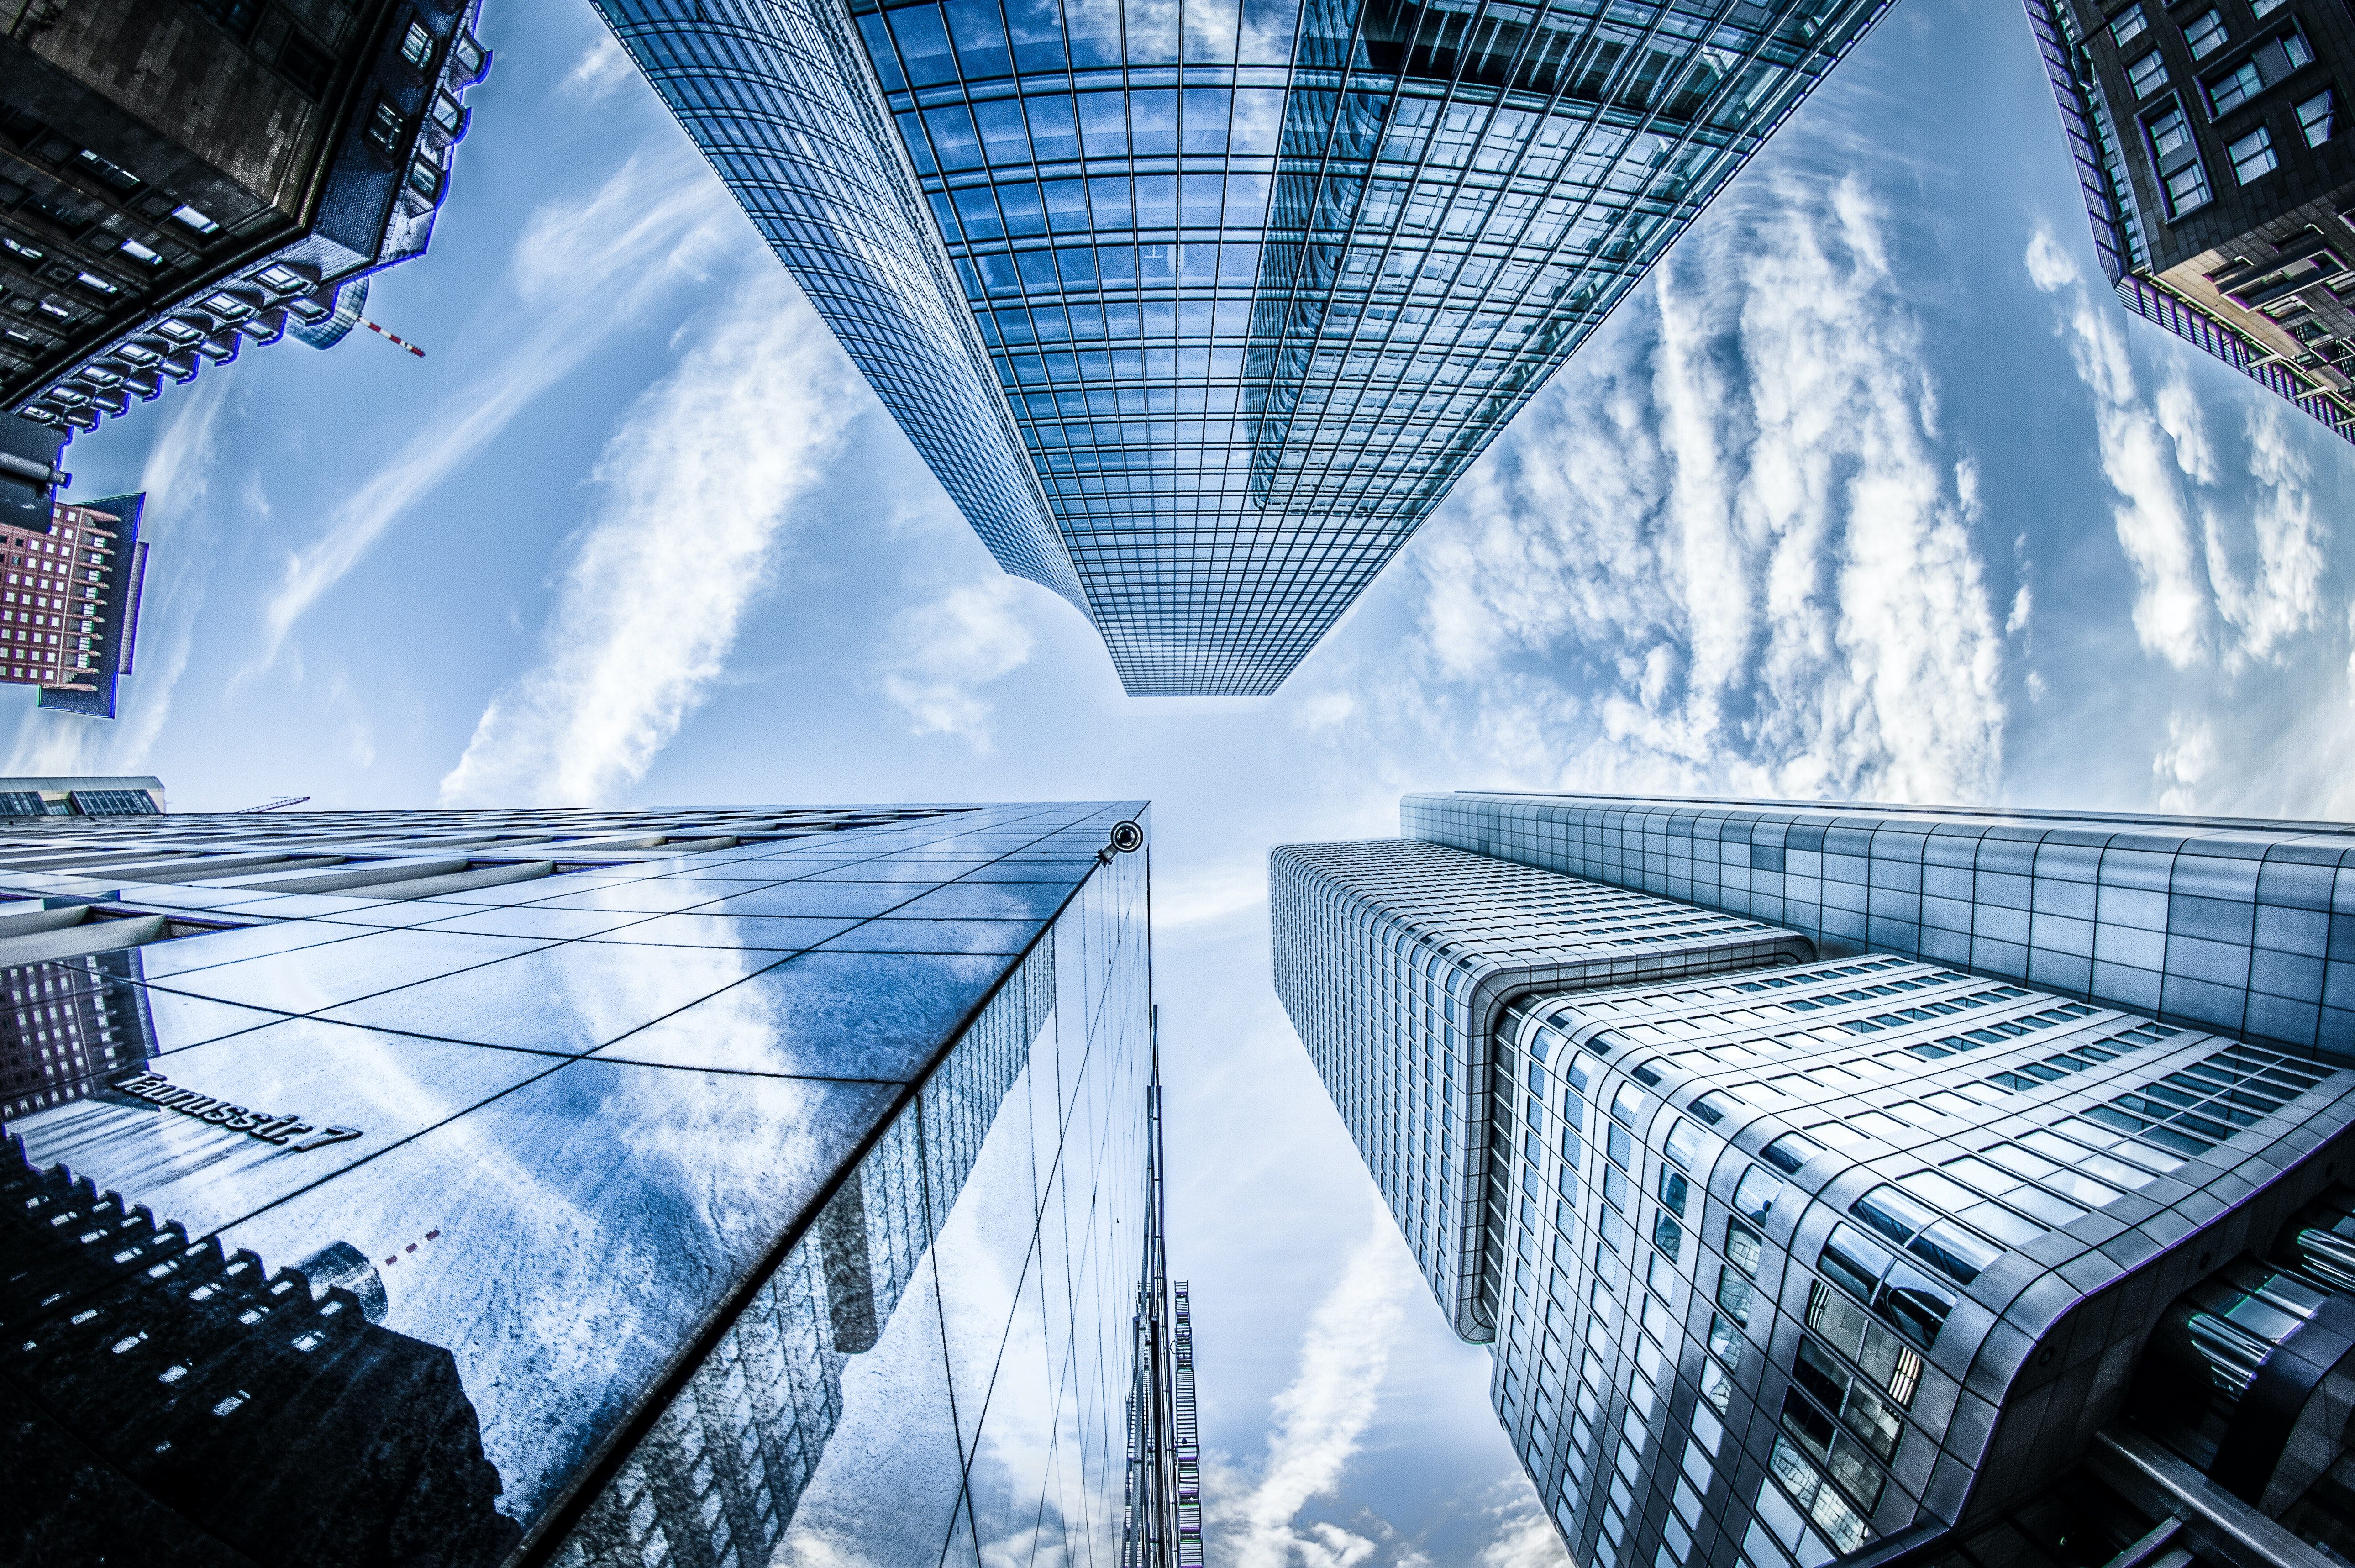 low-angle-photo-of-four-high-rise-curtain-wall-buildings-830891